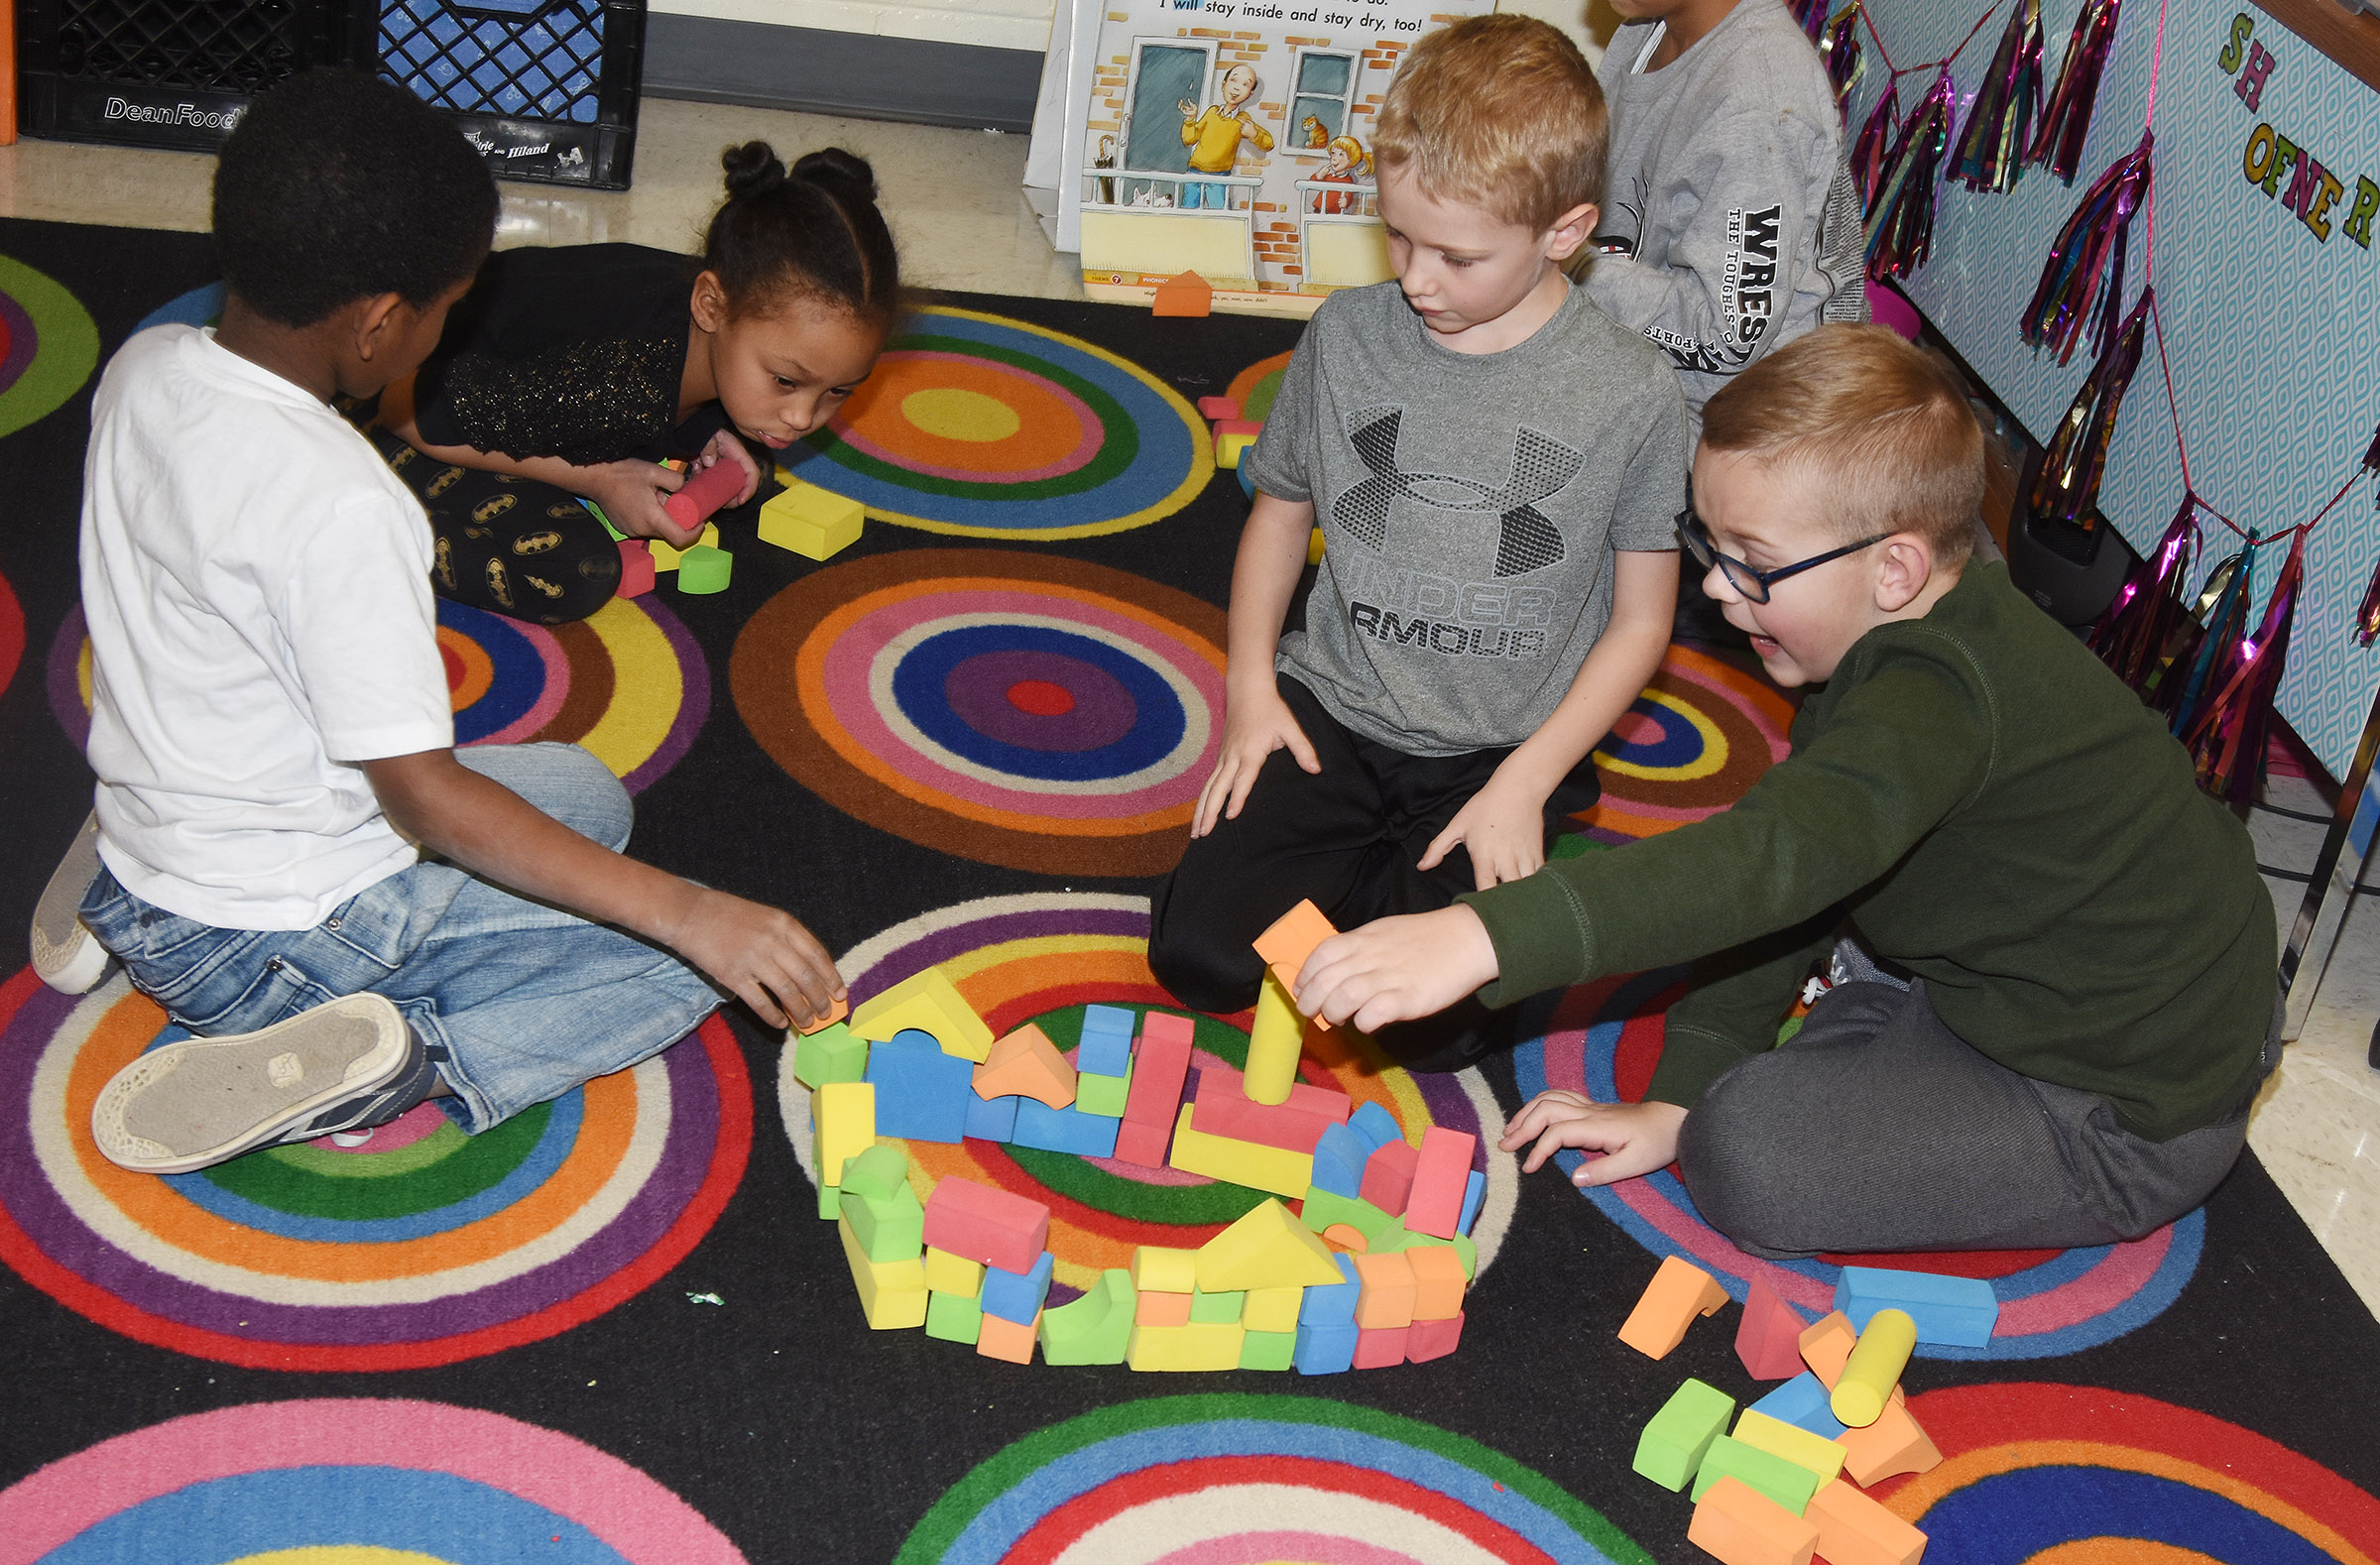 CES first-graders build together with blocks. From left are Kasen Smith, Aleja Taylor, Jackson Wright and John Hagan Newton.